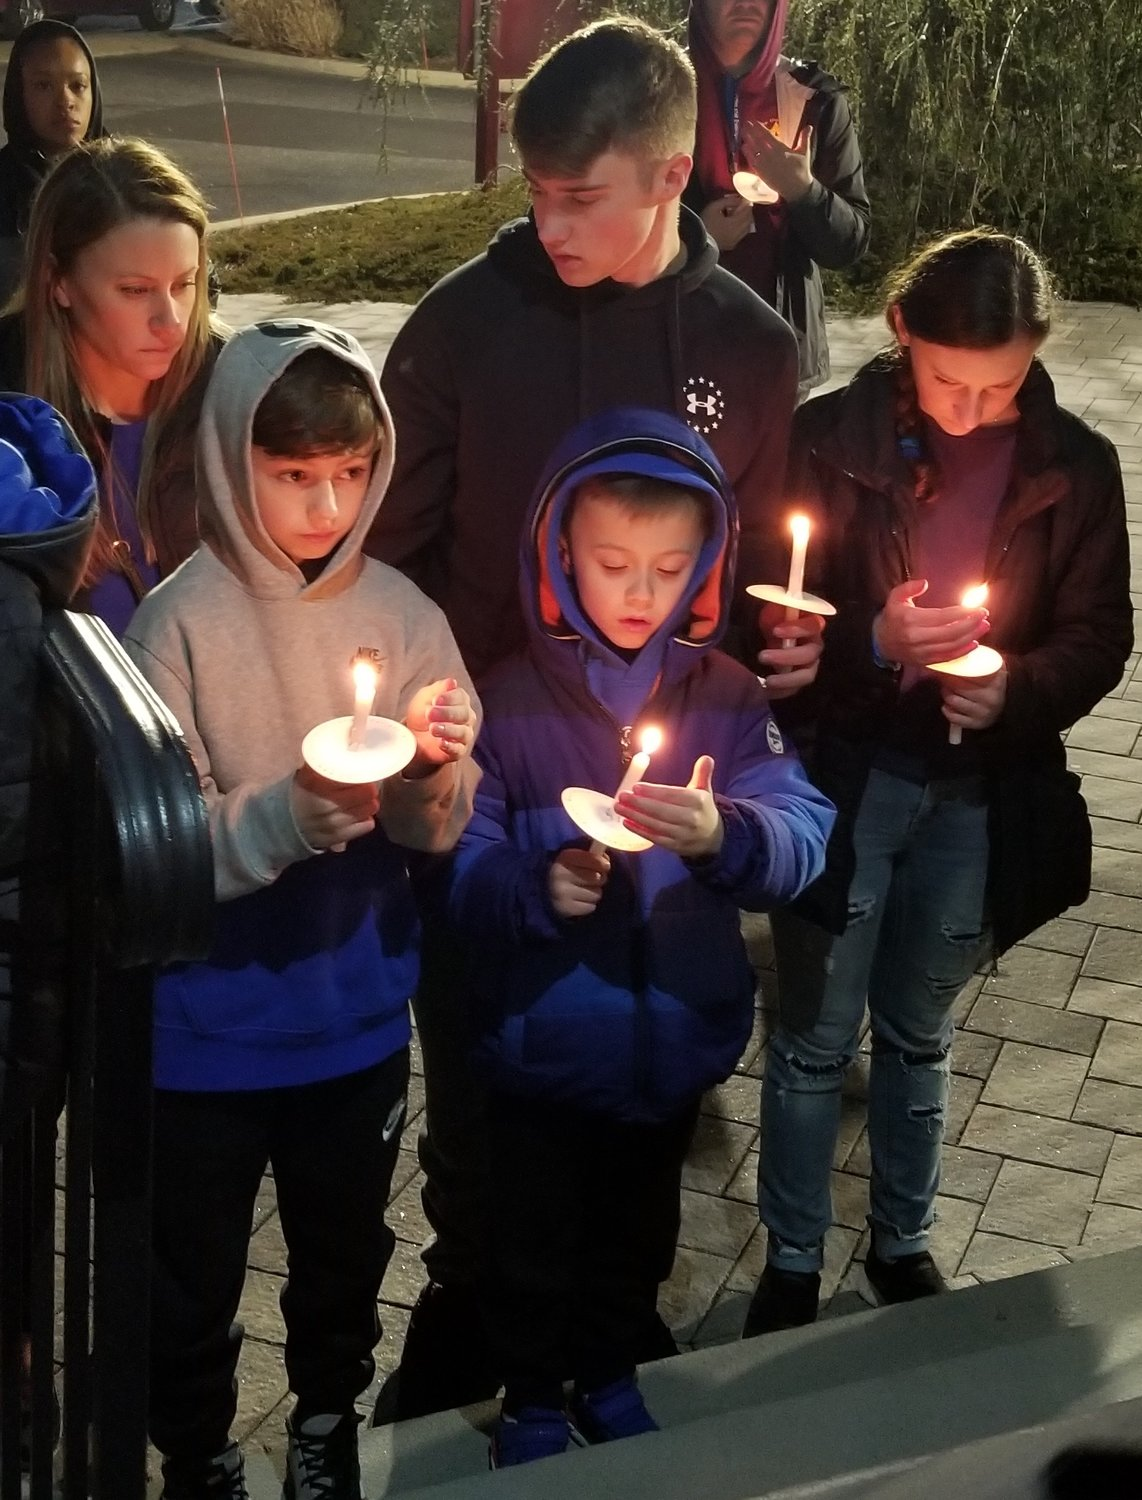 The Munsch family came out to support justice for Thomas Valva as many other families with young children attended the vigil held for Thomas at St. John's church.